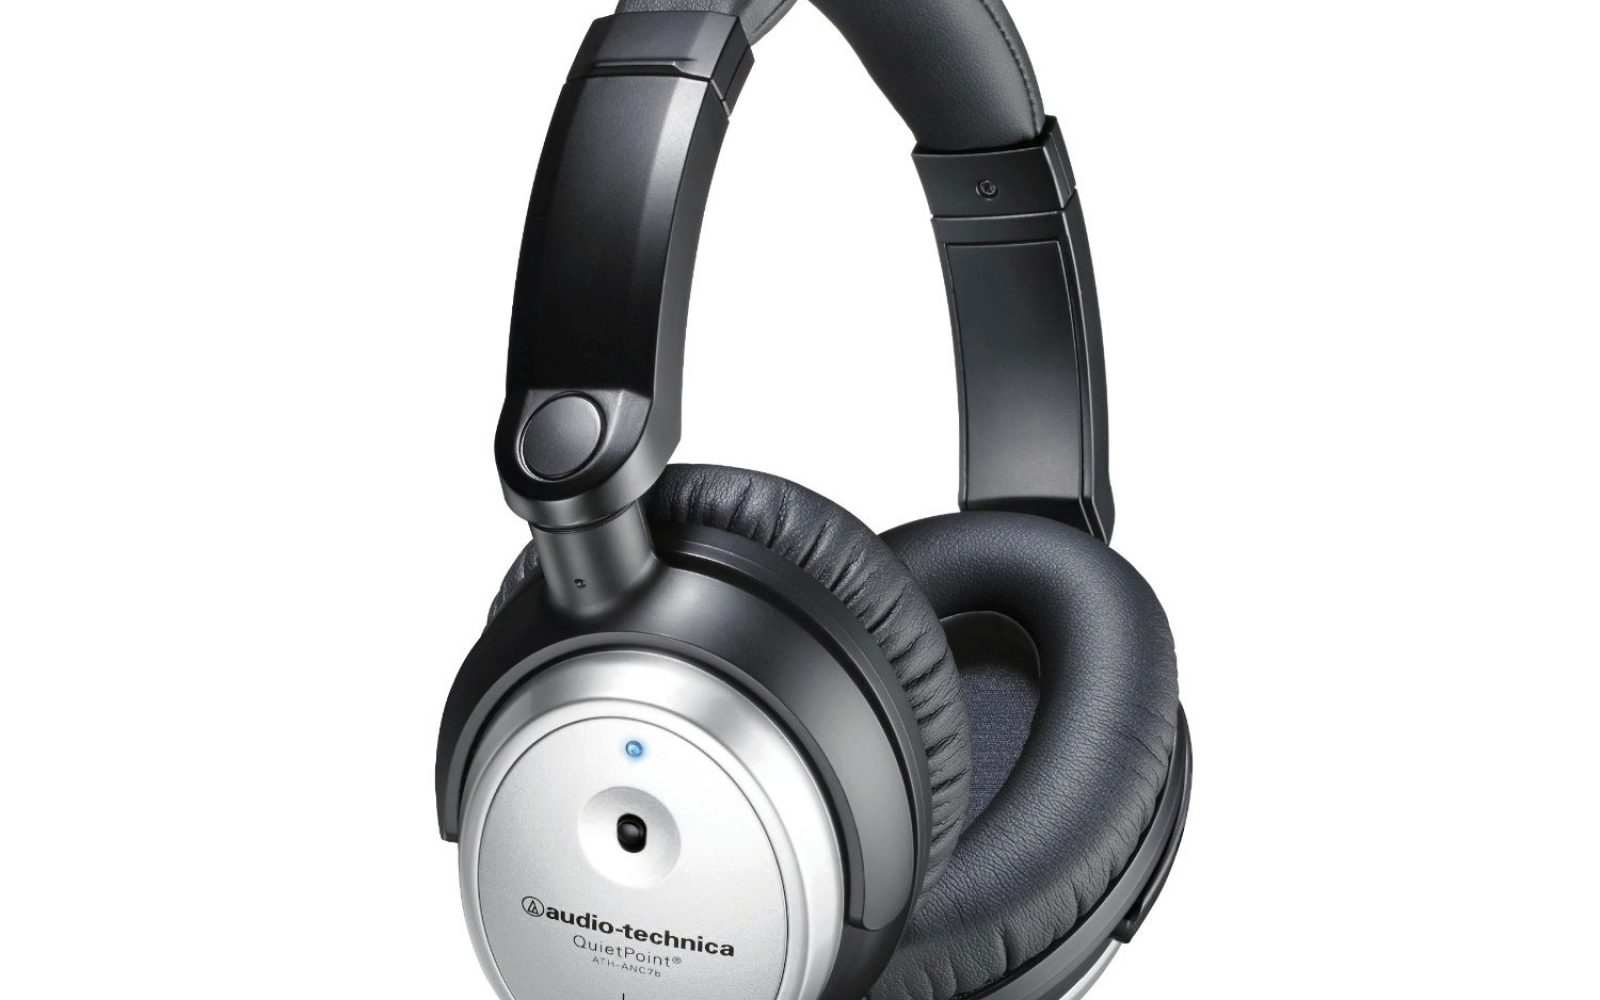 Monster 9to5toys Headset Bluetooth Super Bass Stn 13 Wereless Hanphone Beats By Drdre Audio Technica Quietpoint Noise Cancelling Headphones Black Silver 120 Shipped Reg Up To 186 More